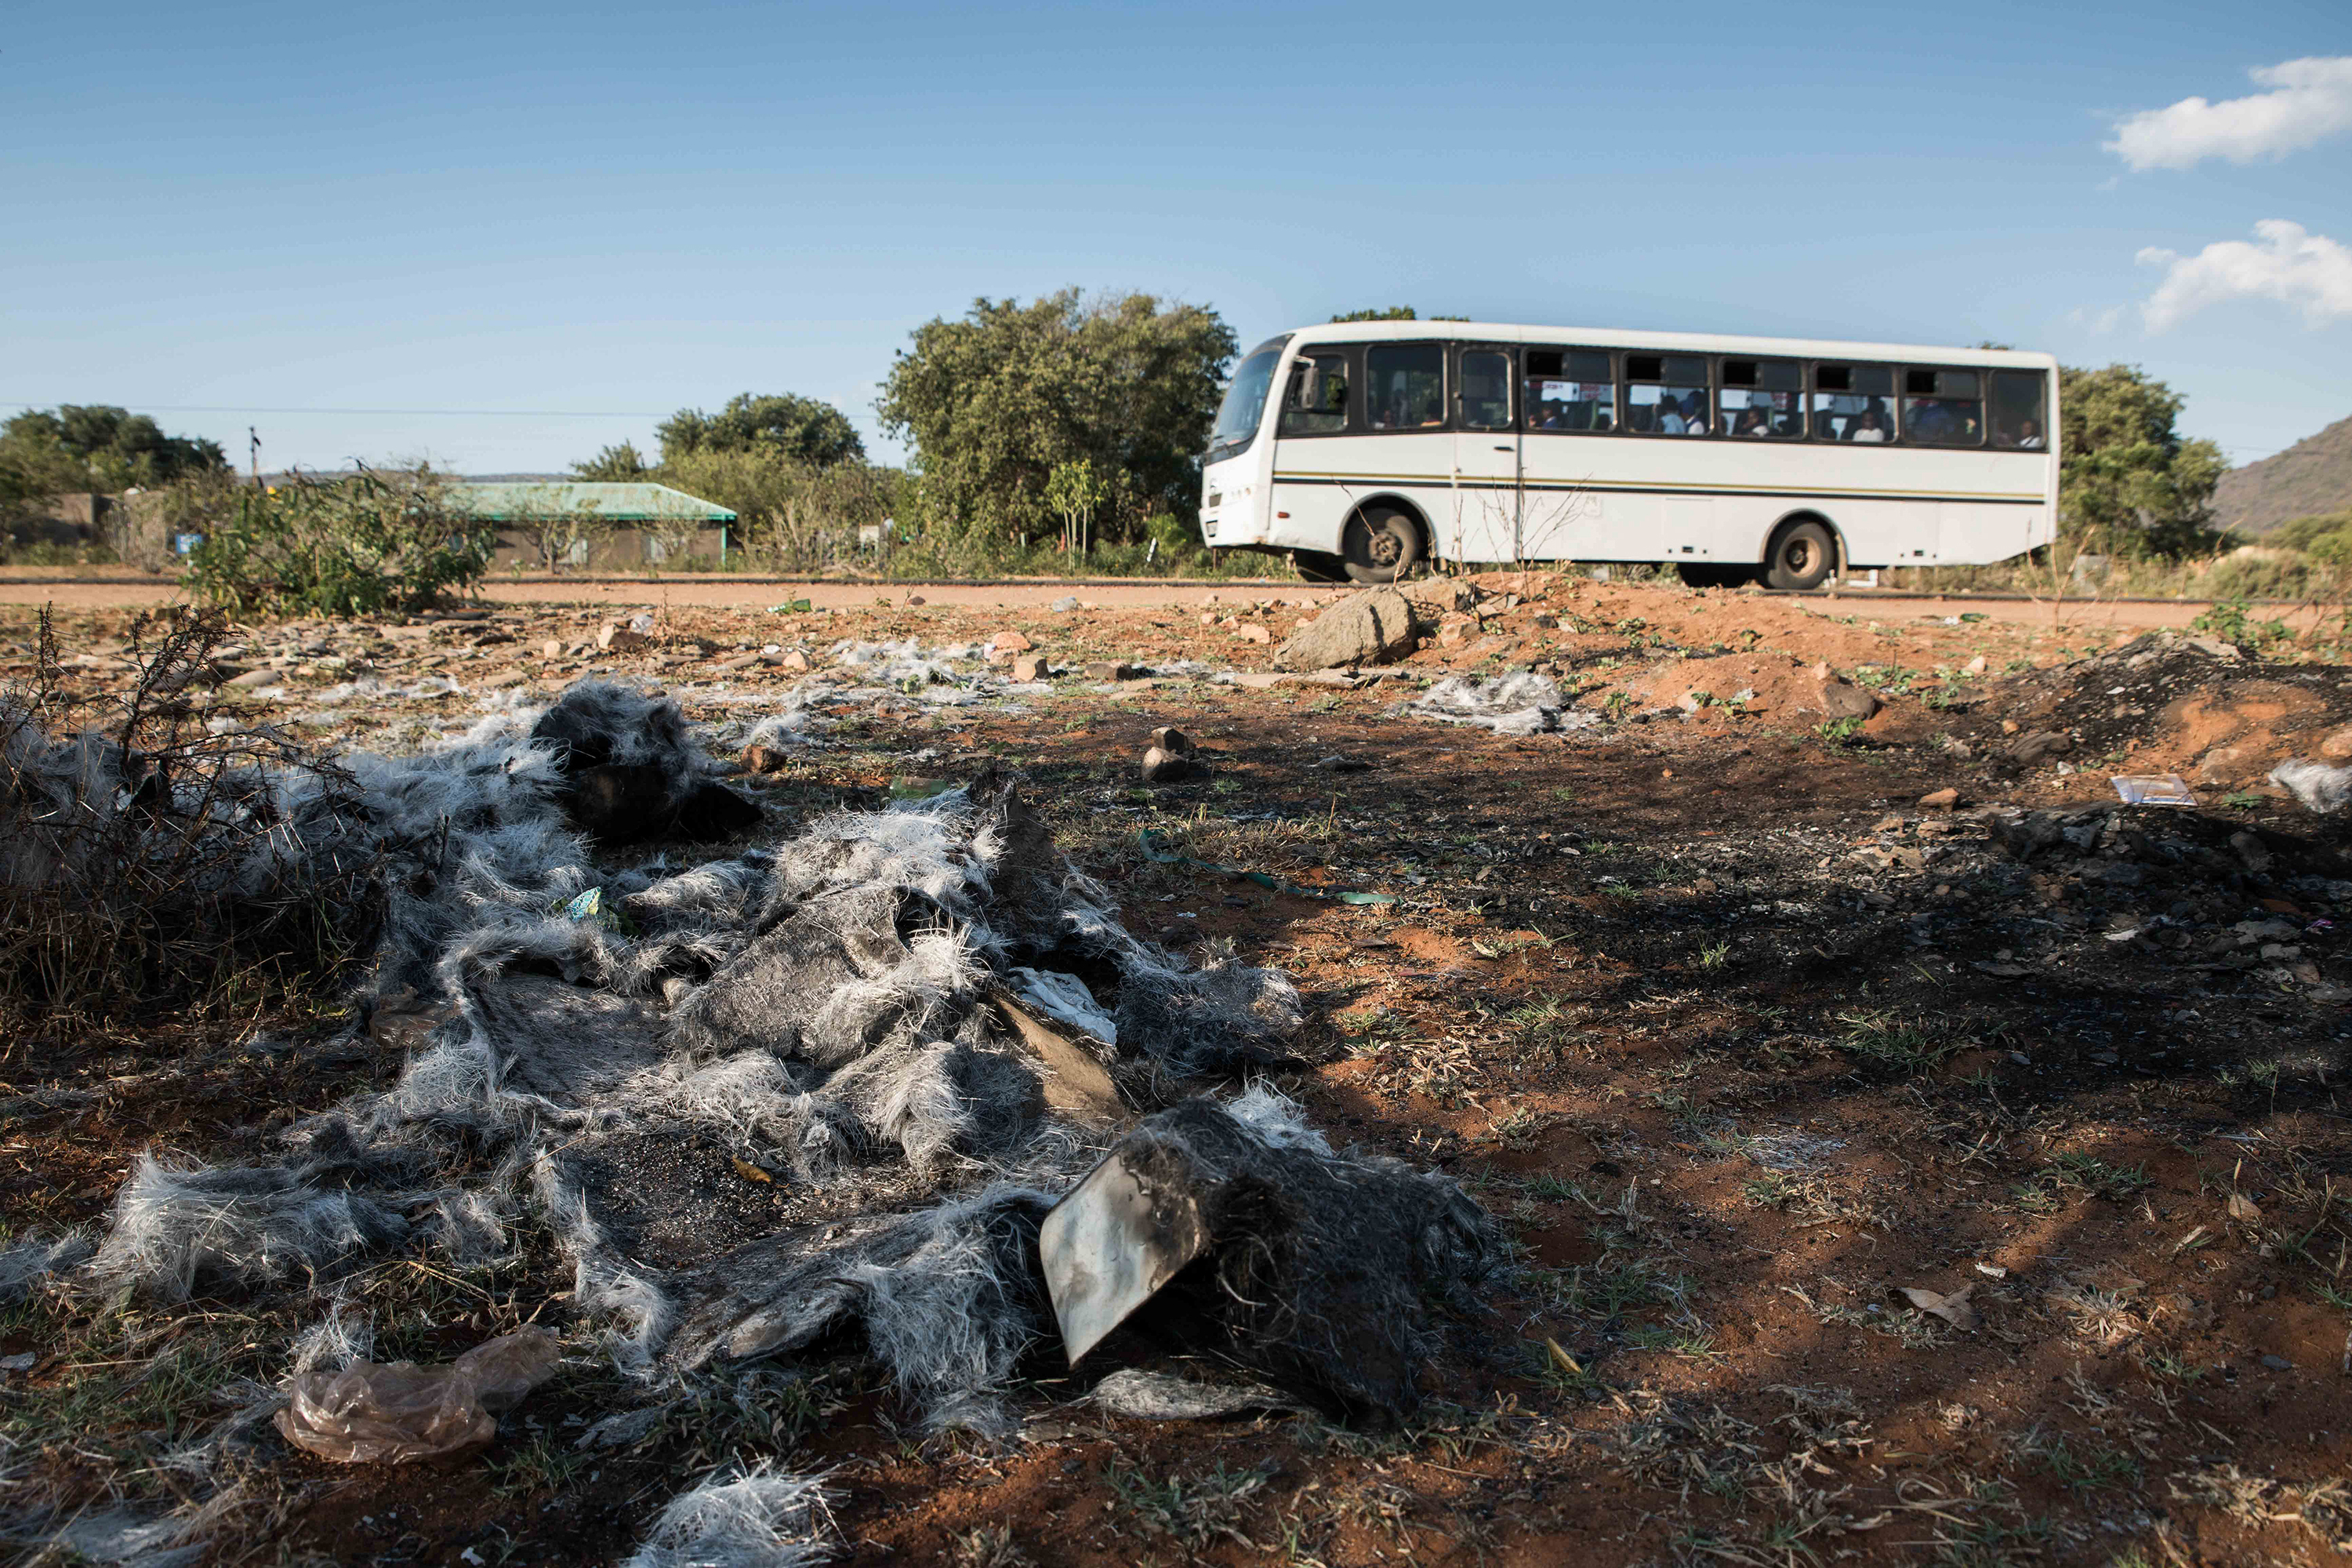 12 May 2018: Buses pass close to where on 2 April 2018, a bus transporting miners to Modikwa Platinum Mine, outside Burgersfort was set alight with a petrol bomb.